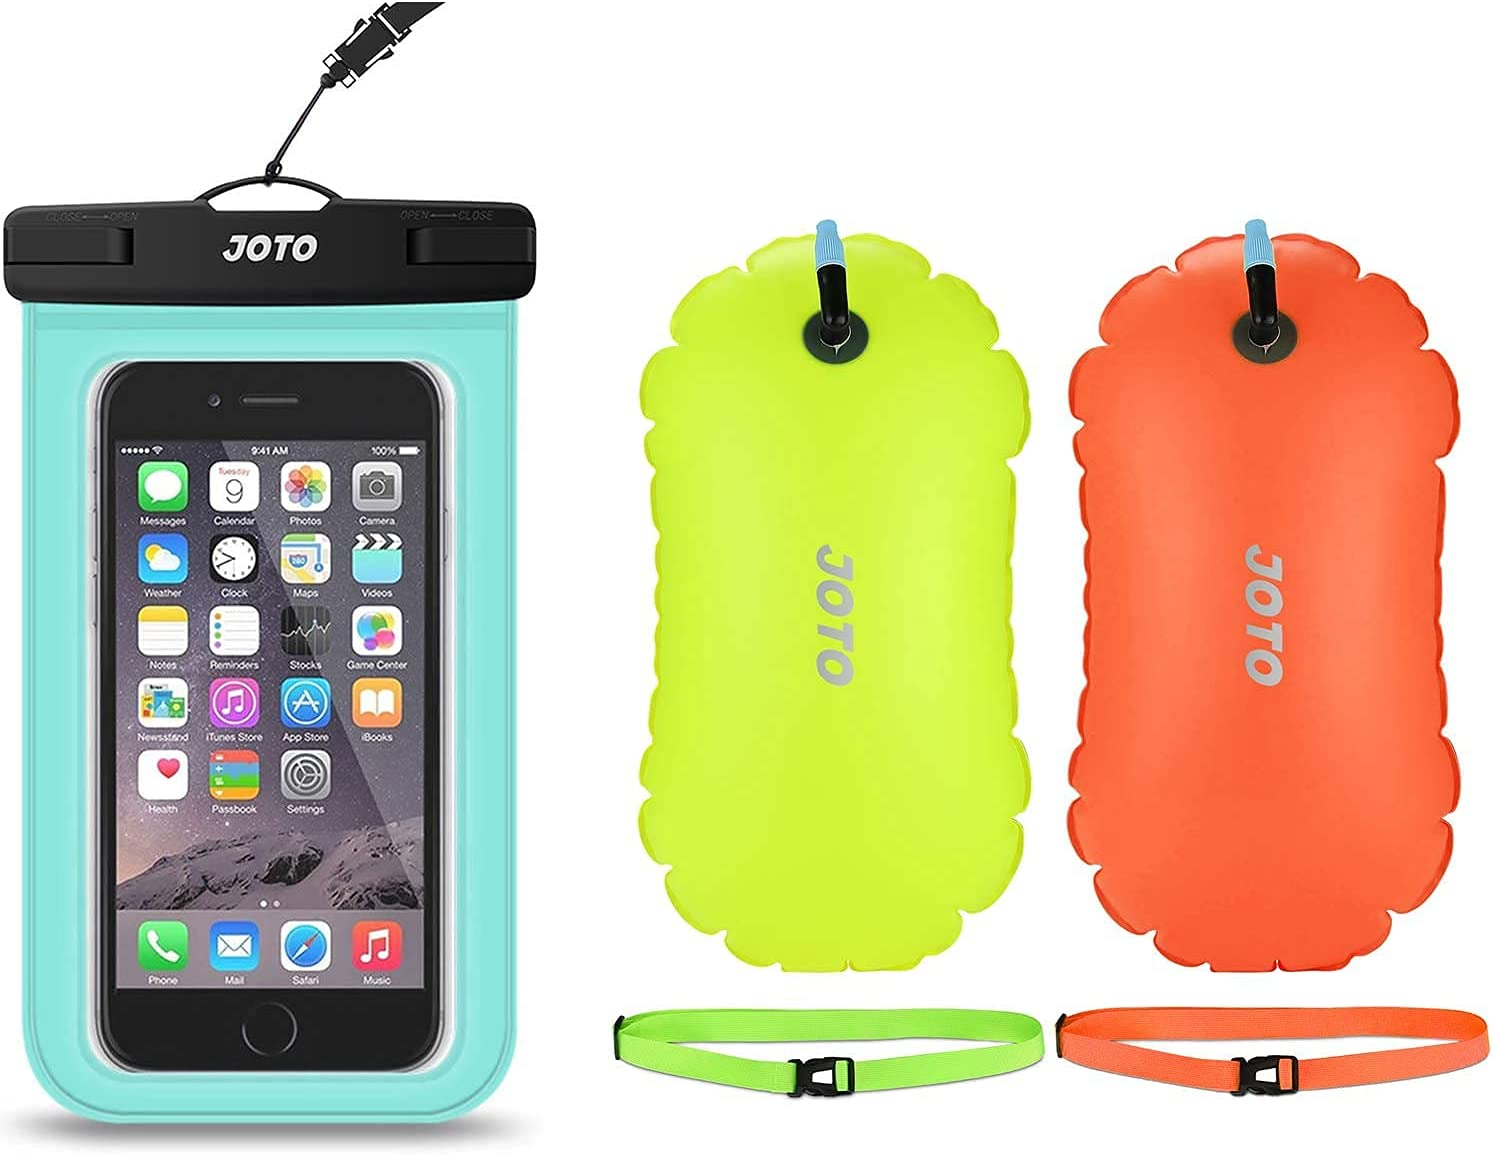 JOTO Universal Waterproof Pouch Cellphone Dry Bag Case Bundle with [2 Pack] Swim Buoy Float, Swimming Bubble Safety Float for Open Water Swimming, Triathletes, Kayaking, Snorkeling